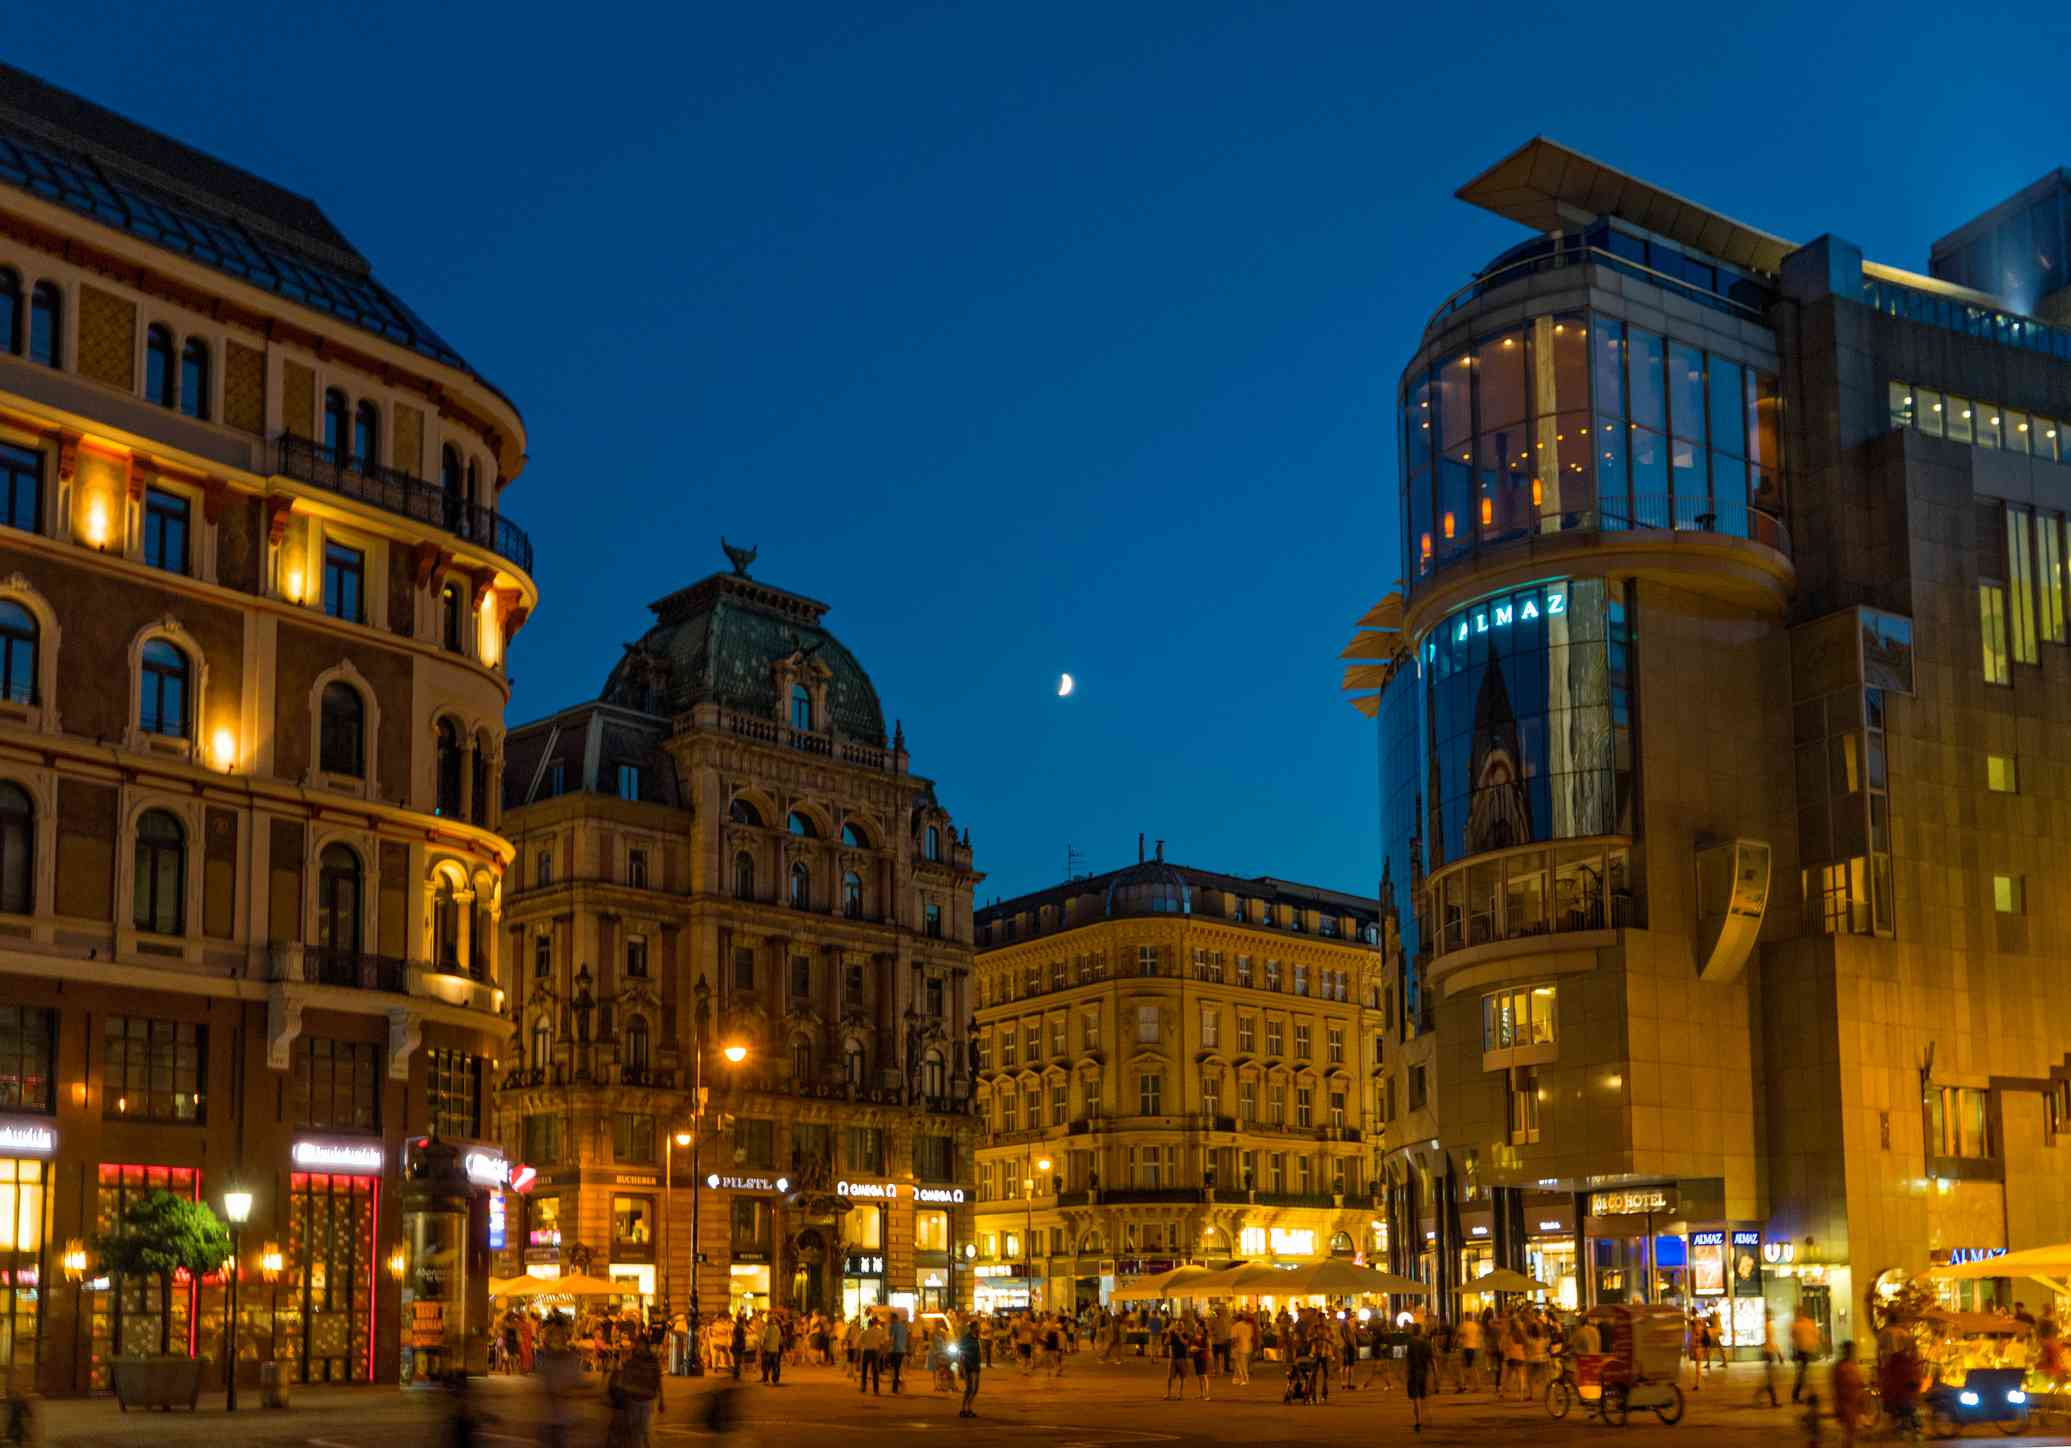 streets of vienna with old and modern buildings at night